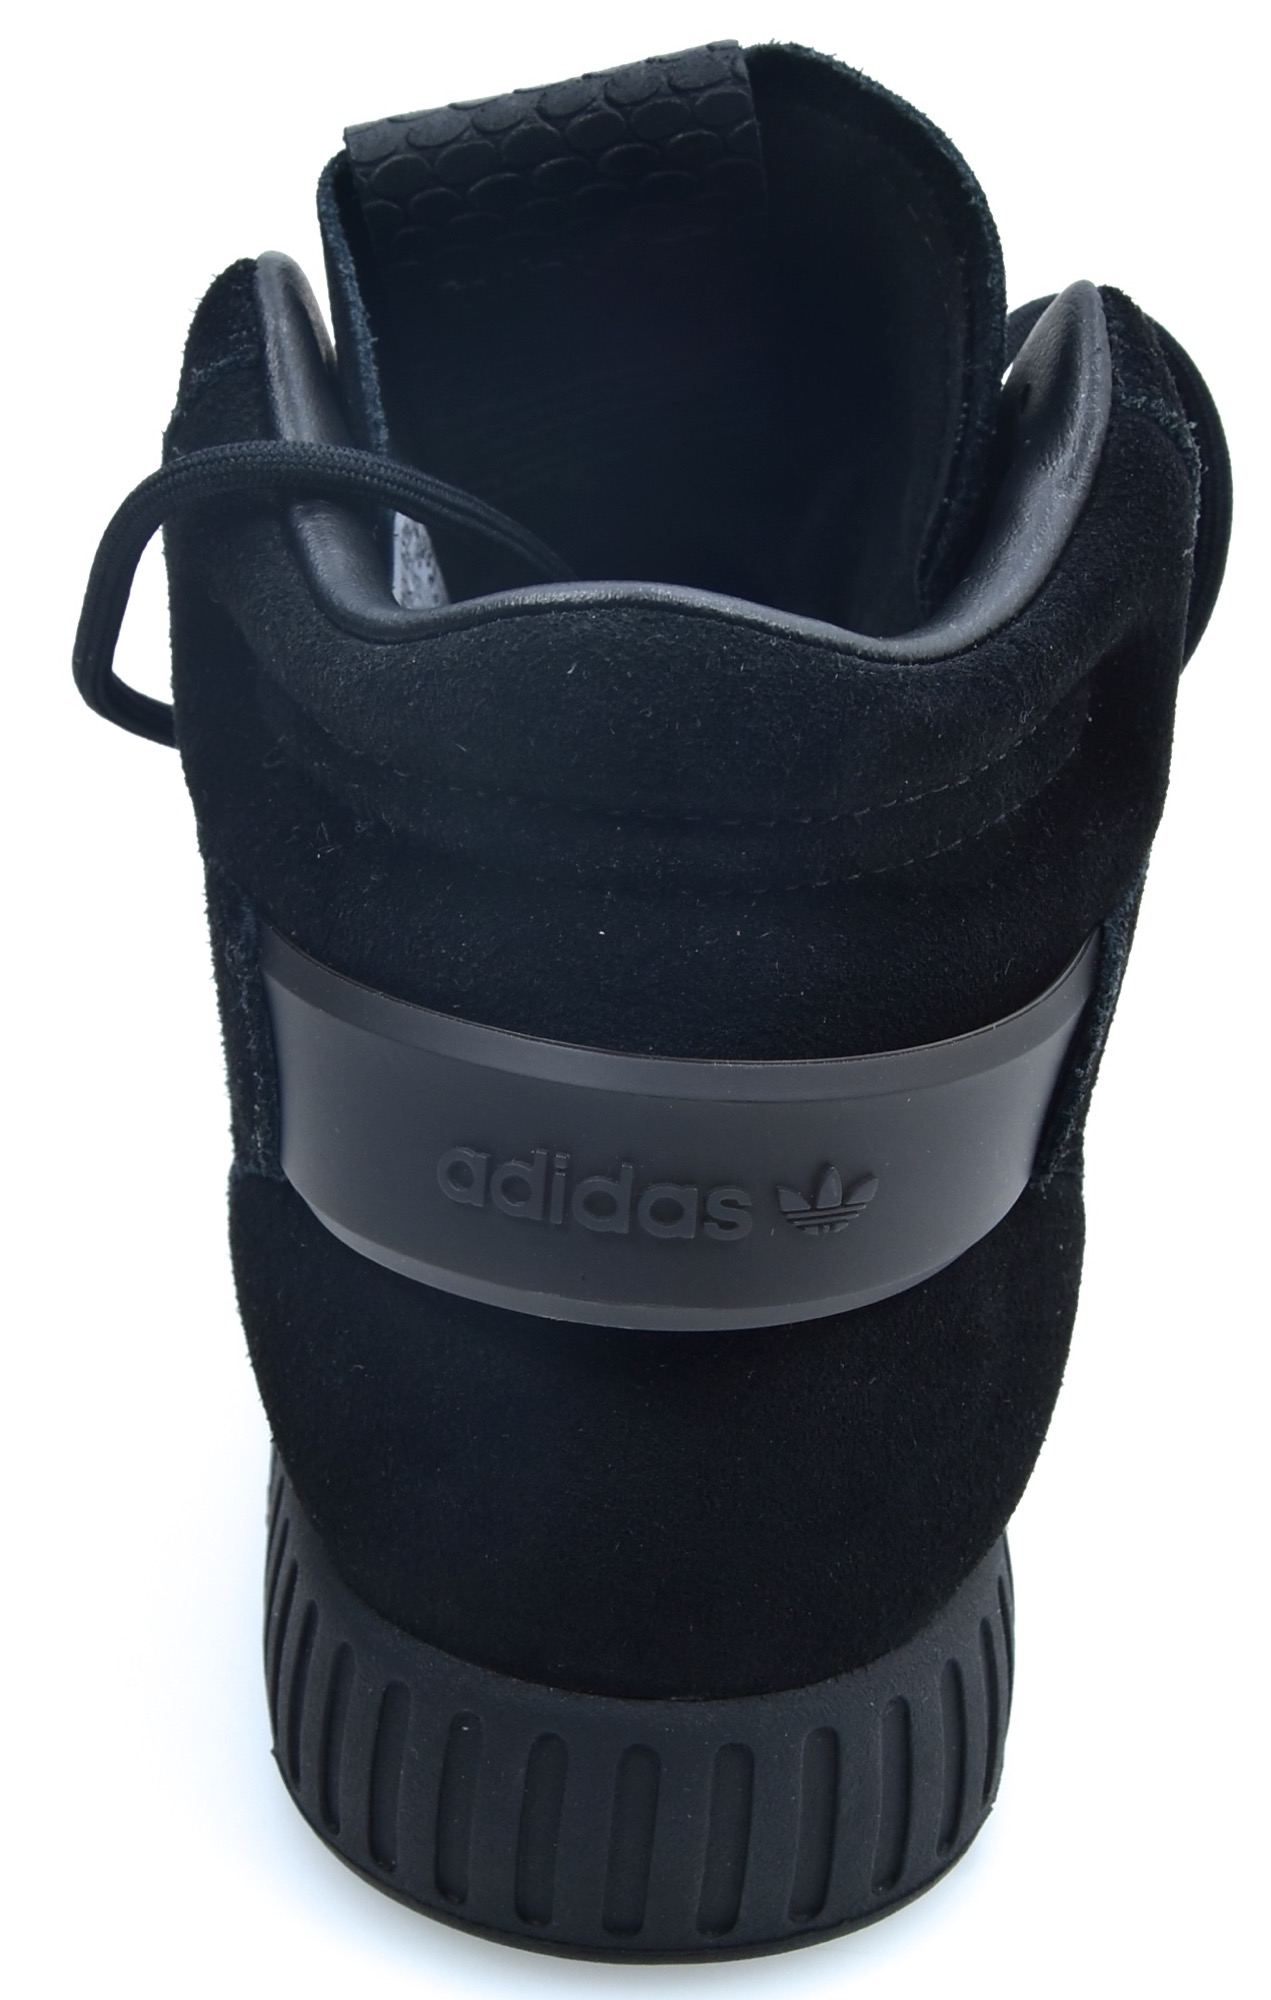 competitive price e8b88 b5248 ADIDAS MAN SPORTS SNEAKER SHOES CODE BY3632 - BY3629 TUBULAR INVADER STRAP